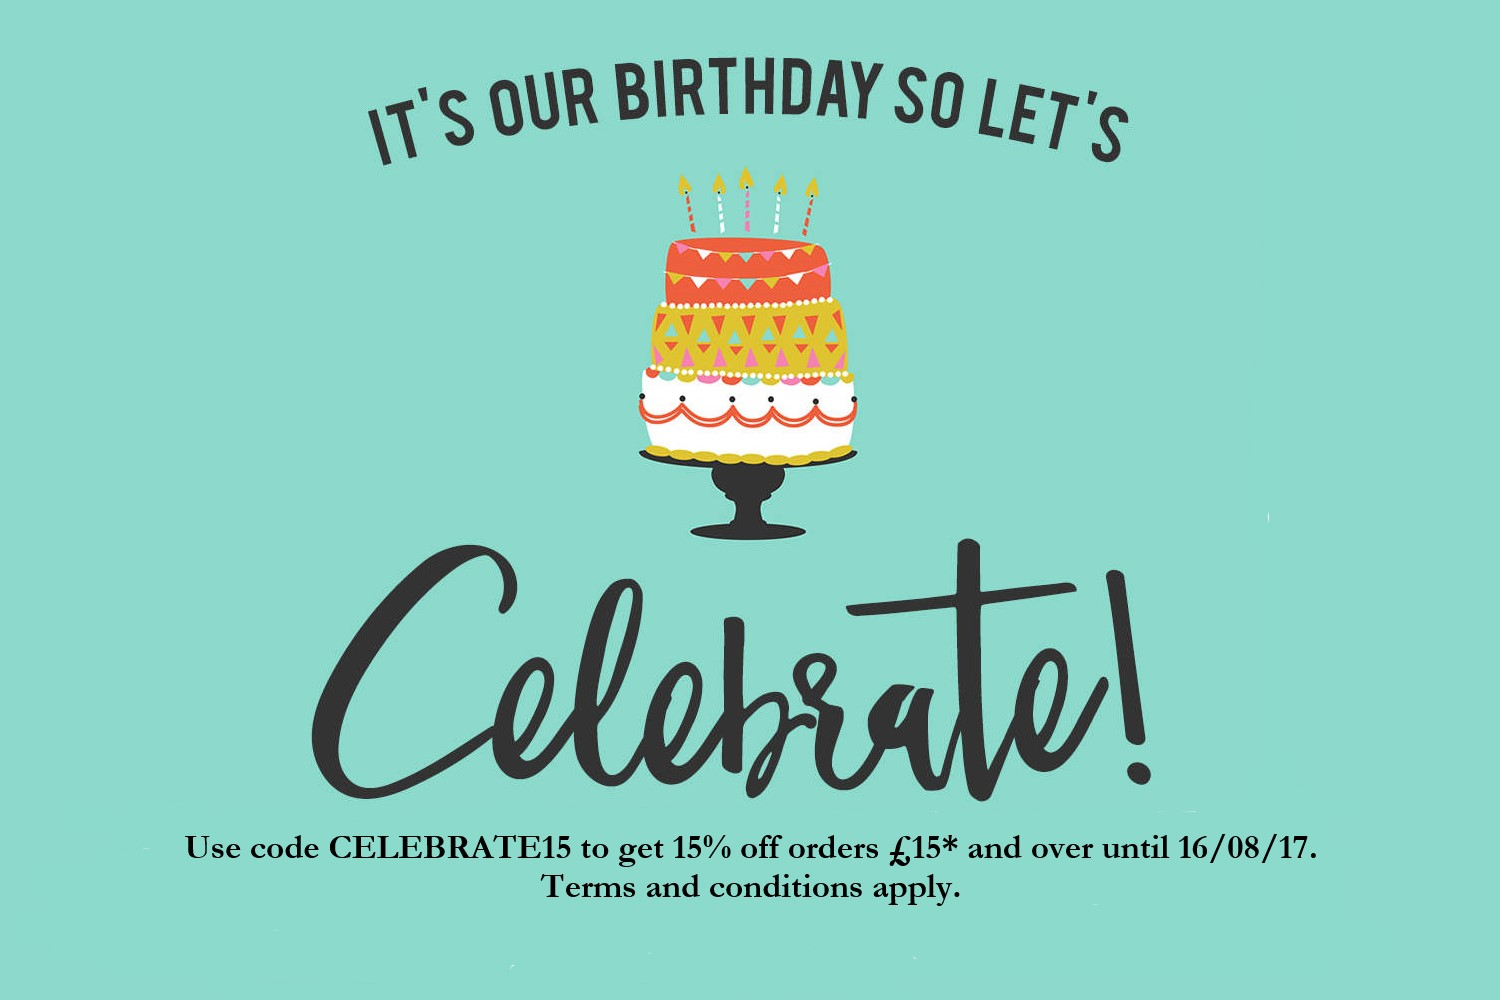 fe3e4f1e461 Birthday offer - get 15% off! - Personalised embroidered gifts ...